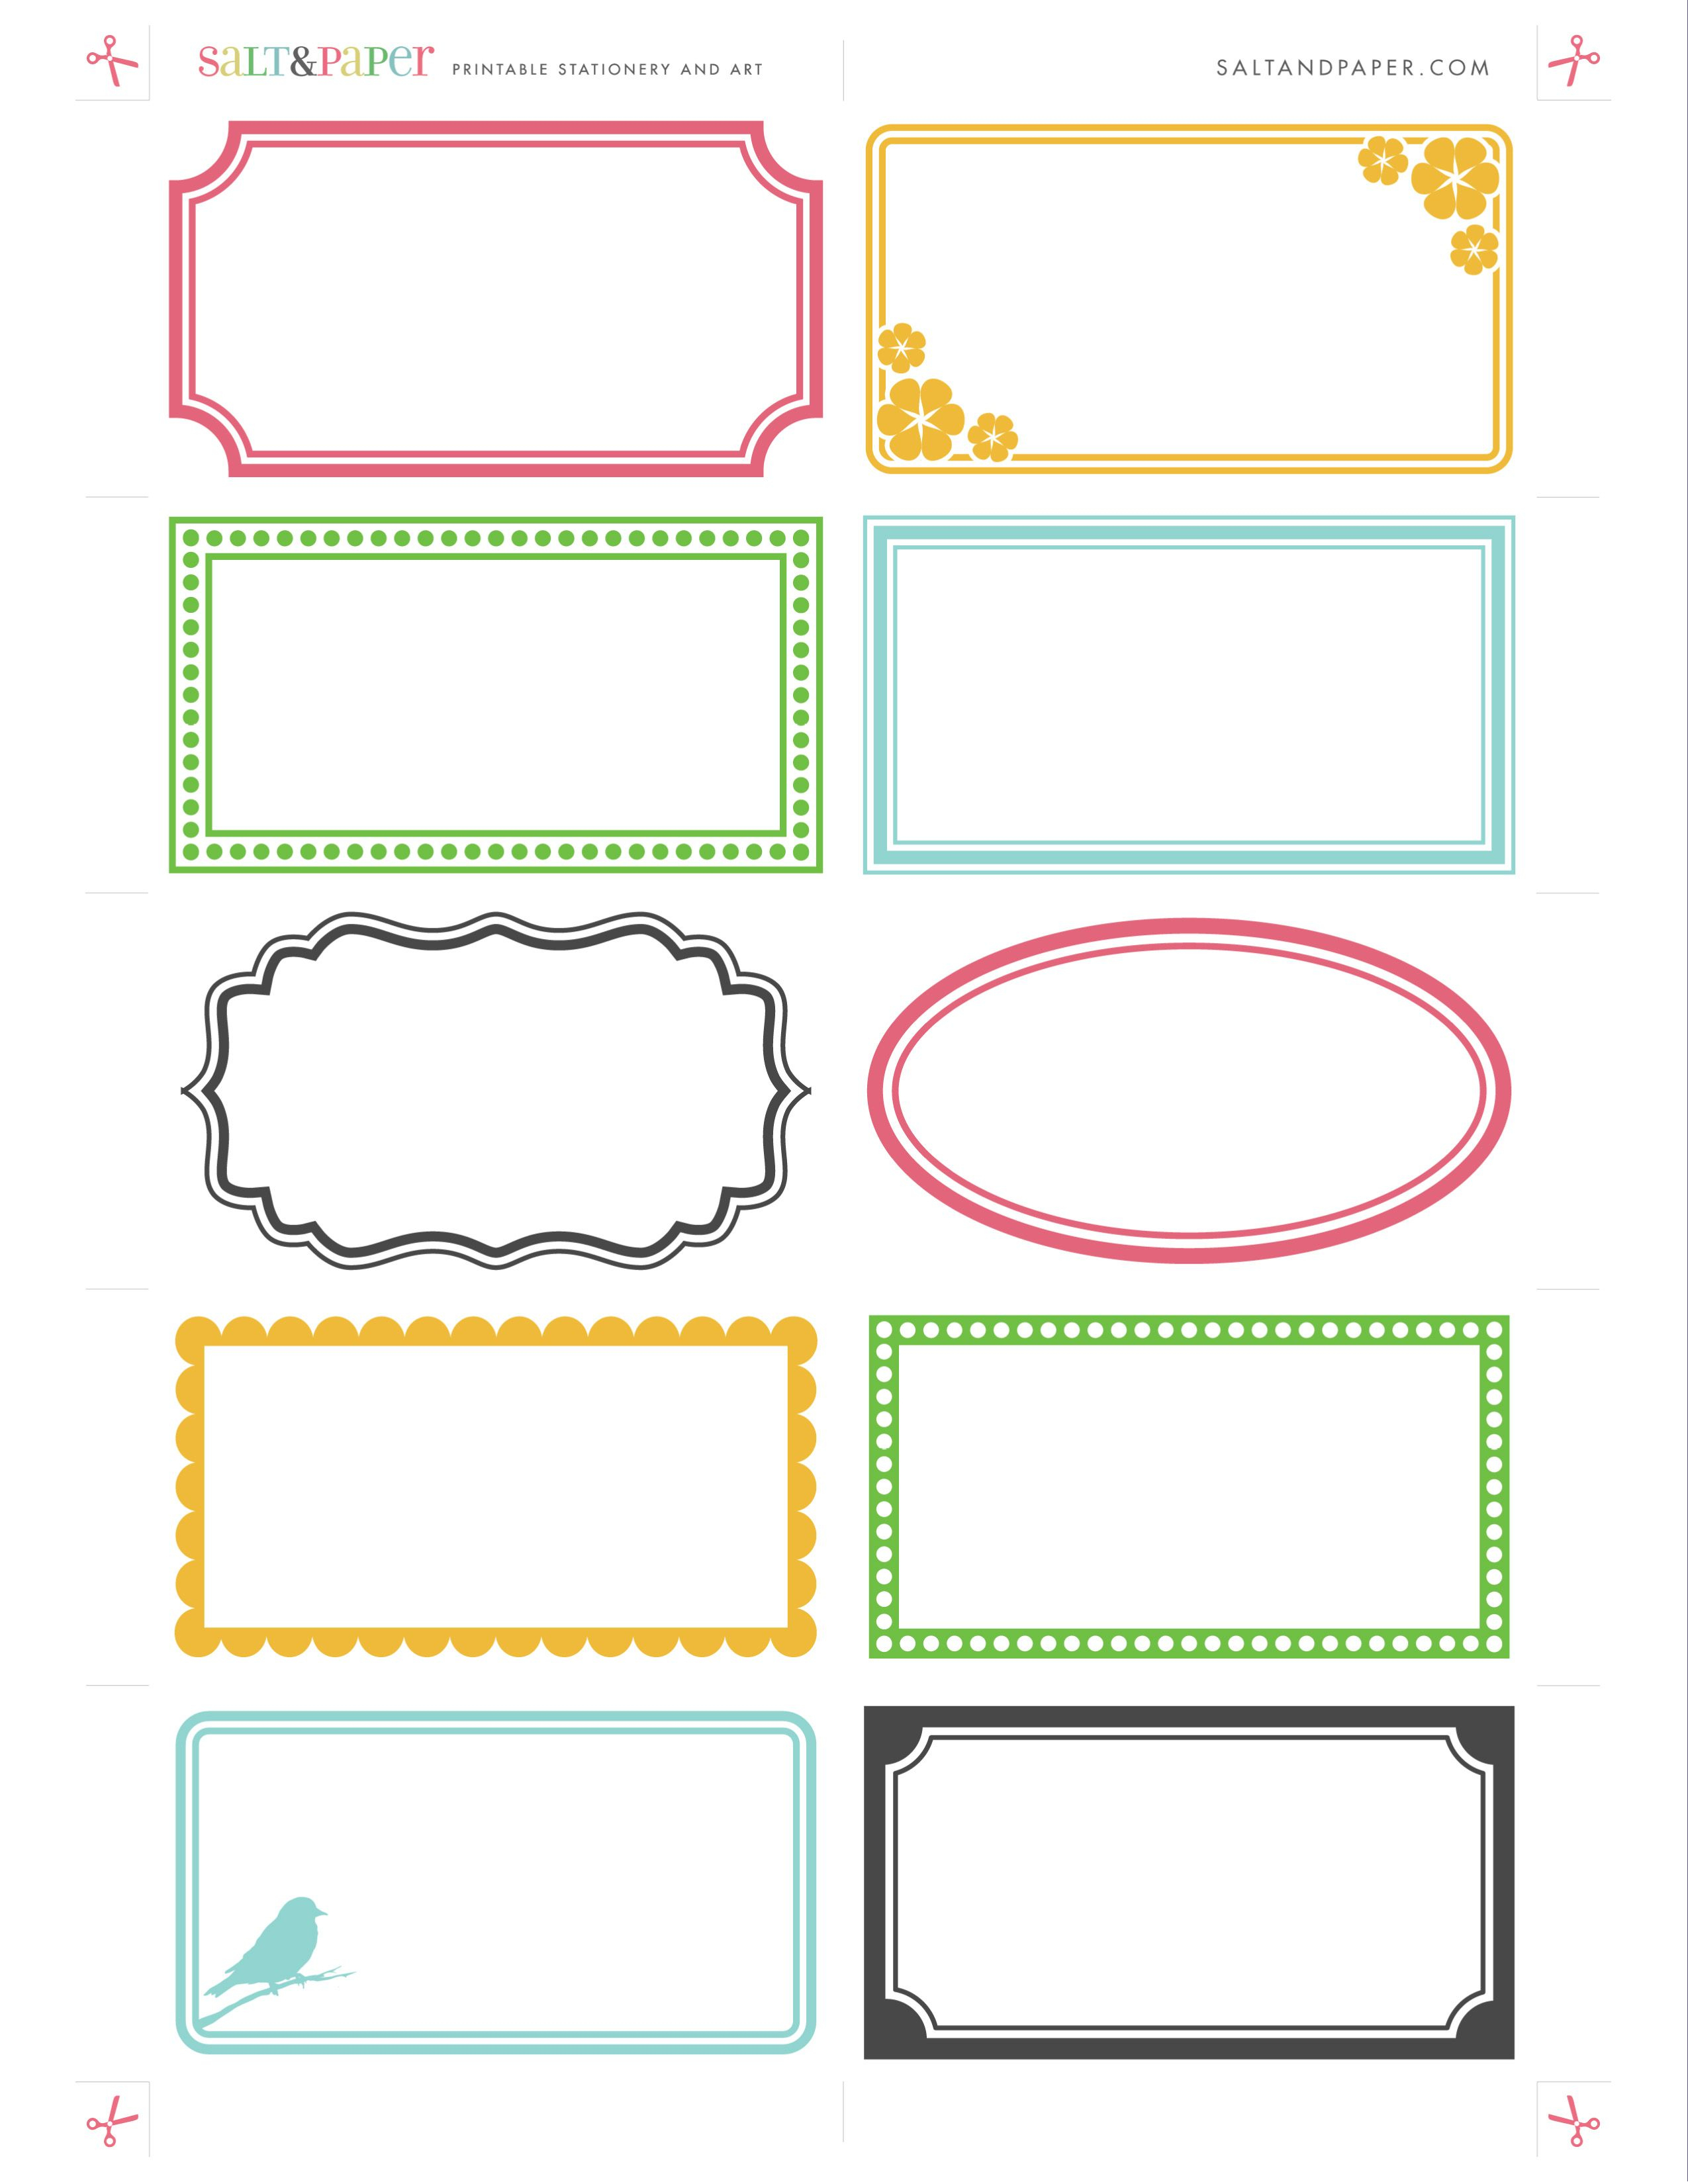 006 Template Ideas Free Printable Label ~ Ulyssesroom - Free Printable Labels Avery 5160